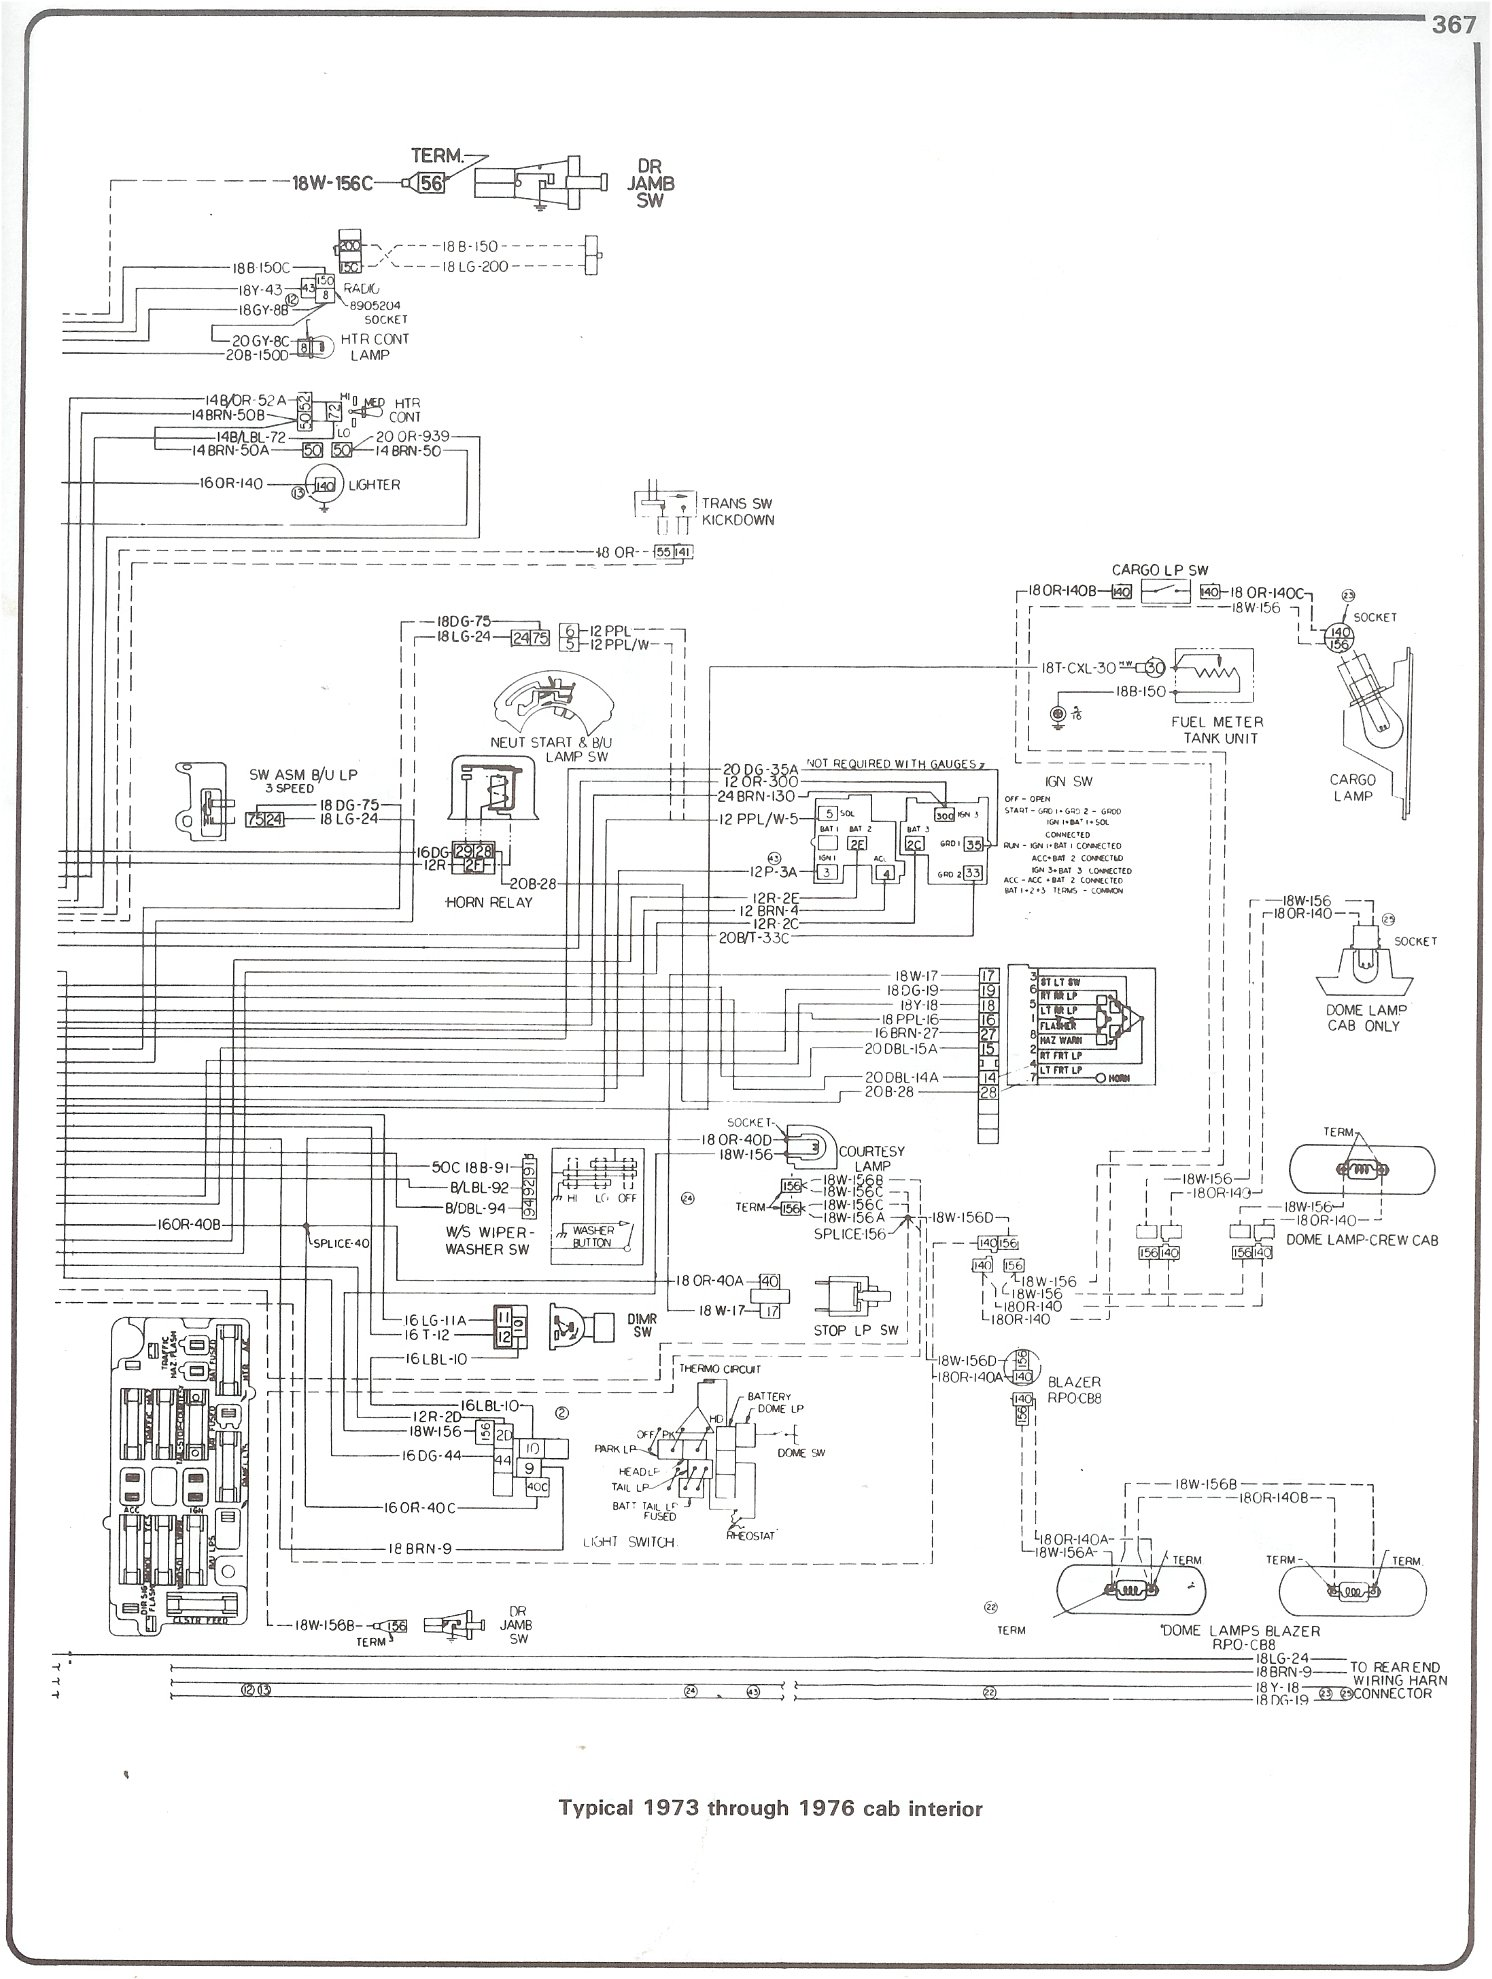 1986 Cadillac Fuse Box Custom Project Wiring Diagram 1990 Brougham Complete 73 87 Diagrams